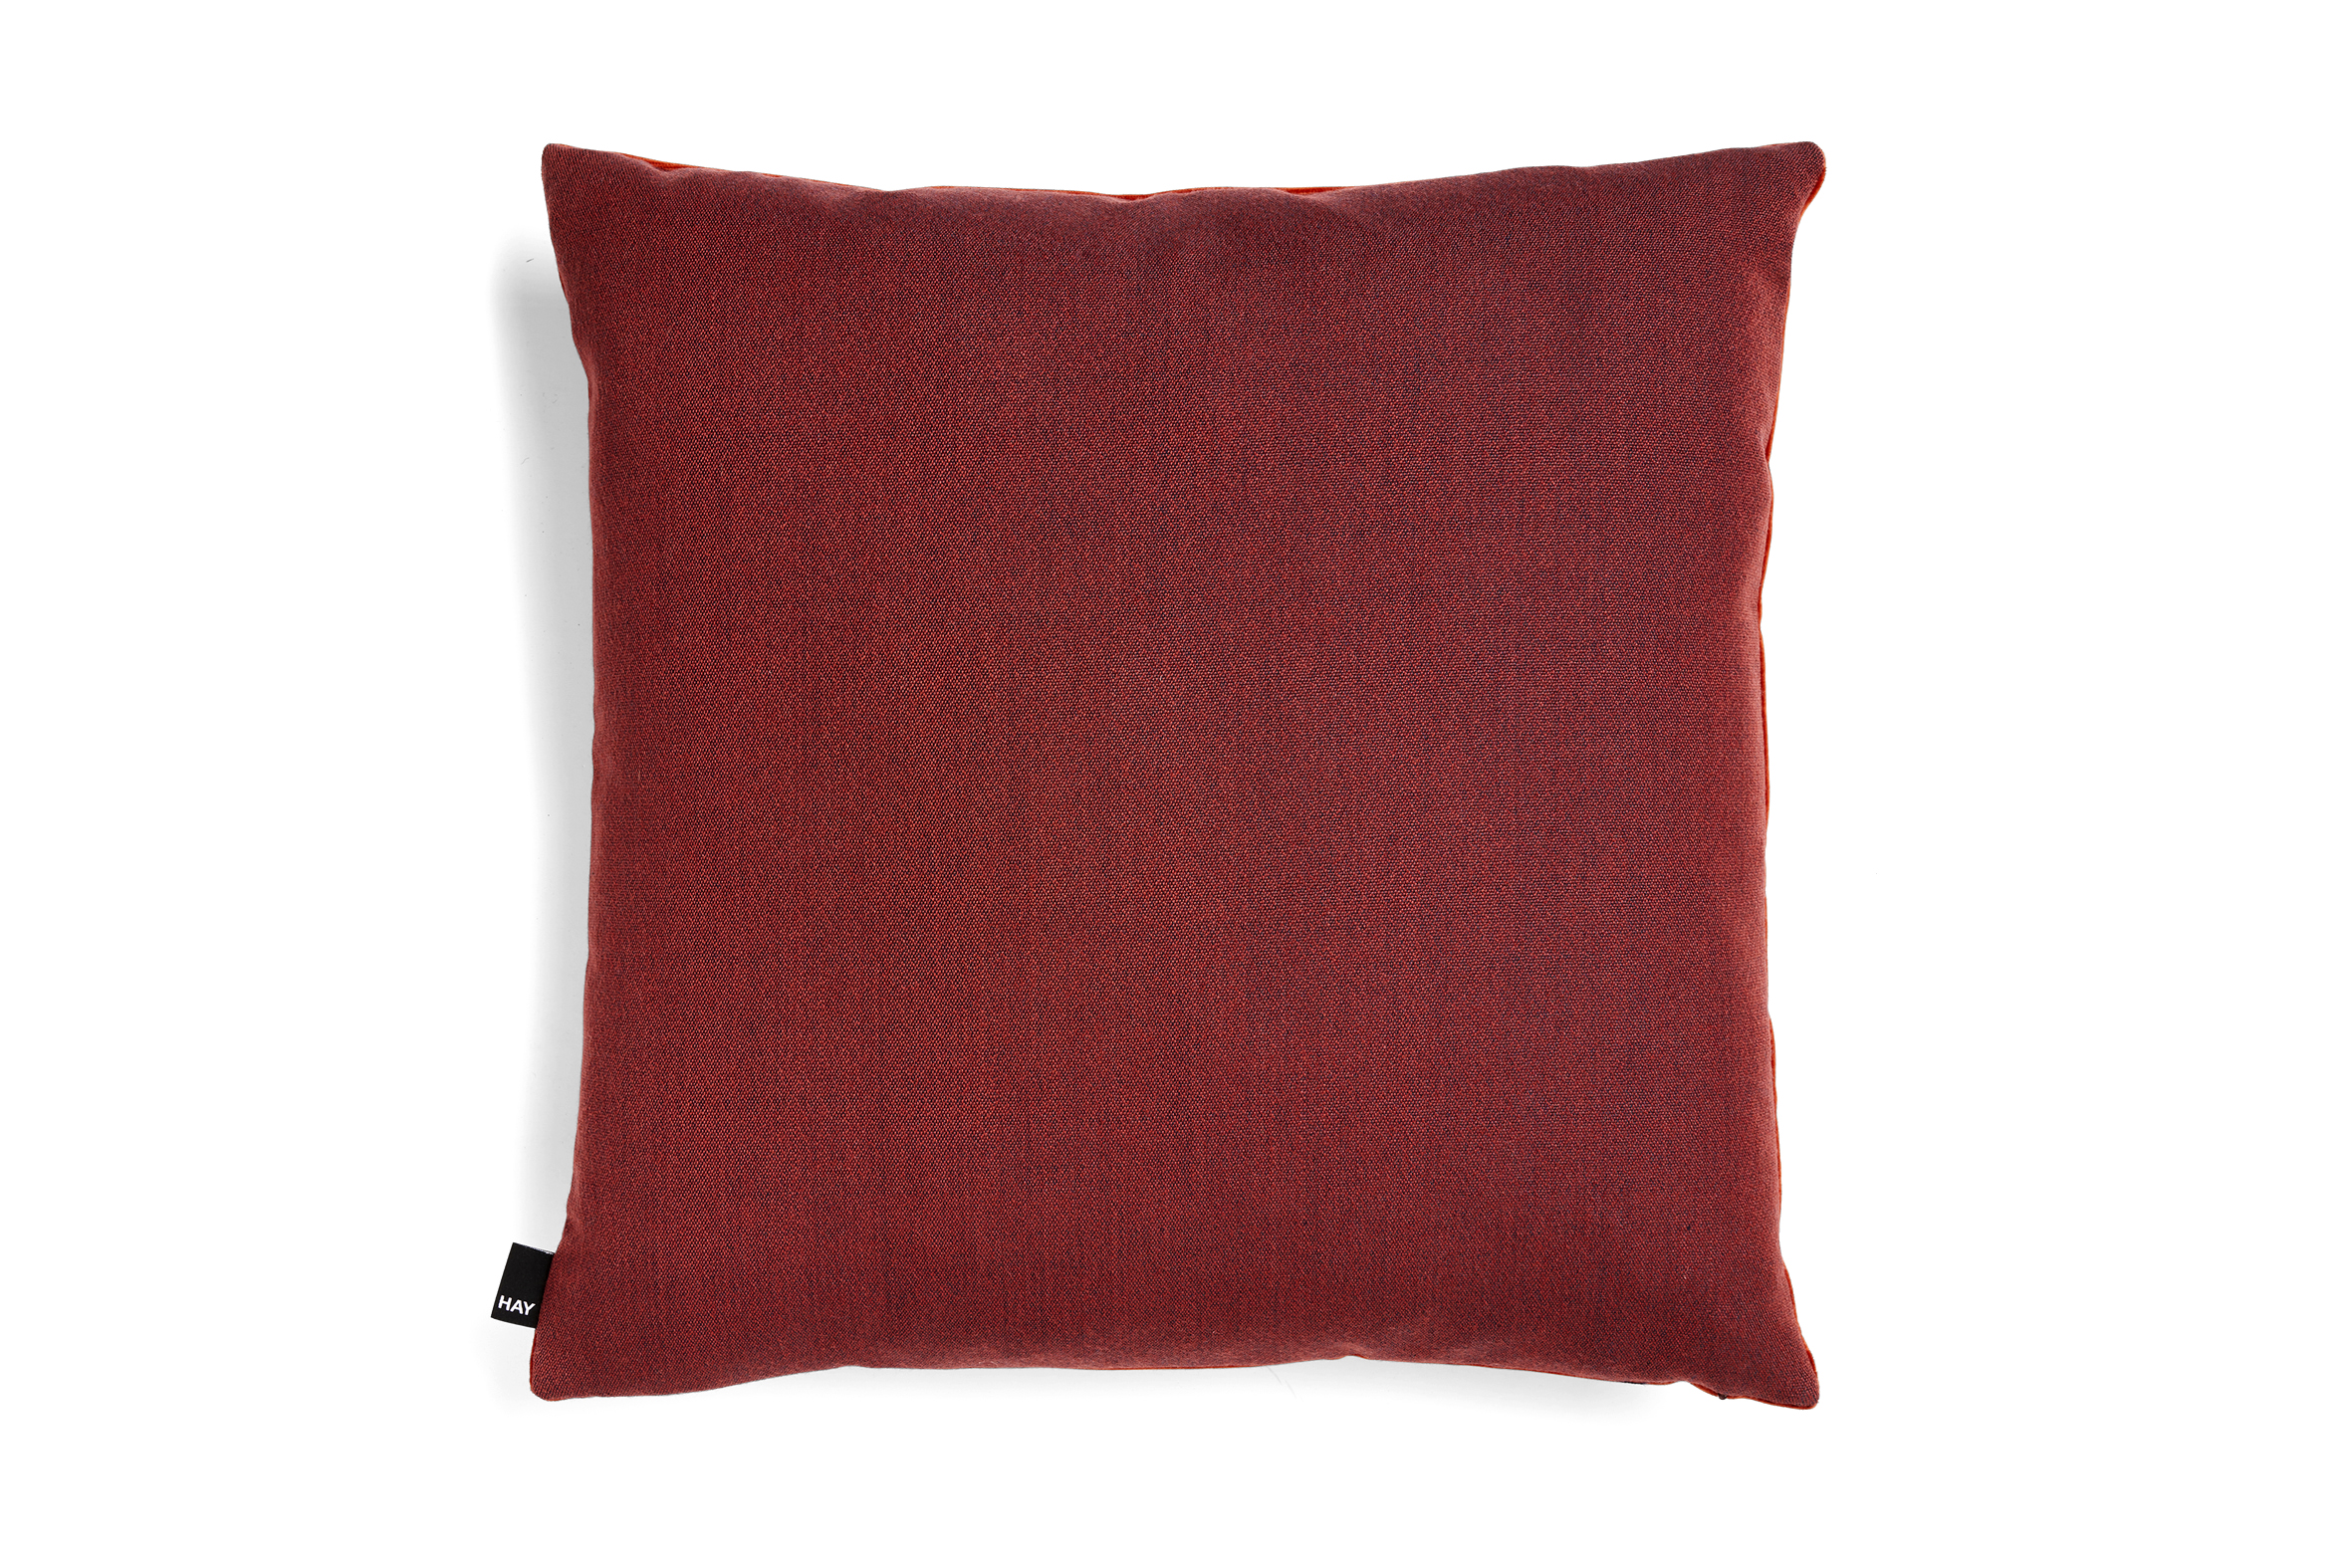 Eclectic cushion 50x50 vibrant red